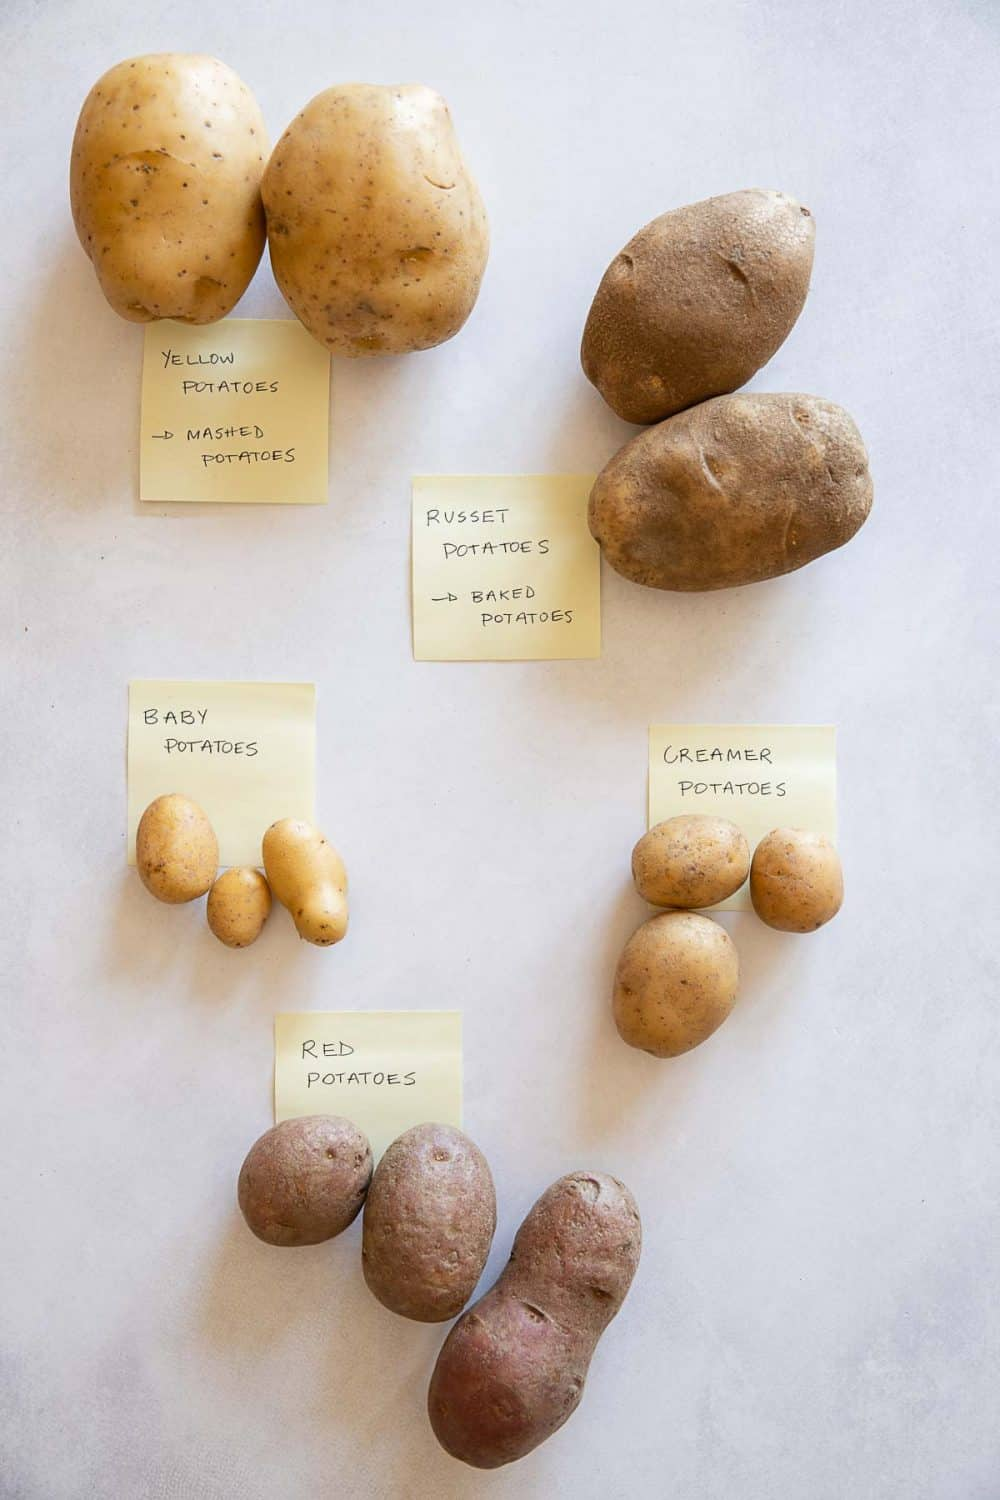 5 different types of potatoes labeled with post-its. Yellow-fleshed, Russet, red, creamer, fingerling. instant pot boiled potatoes